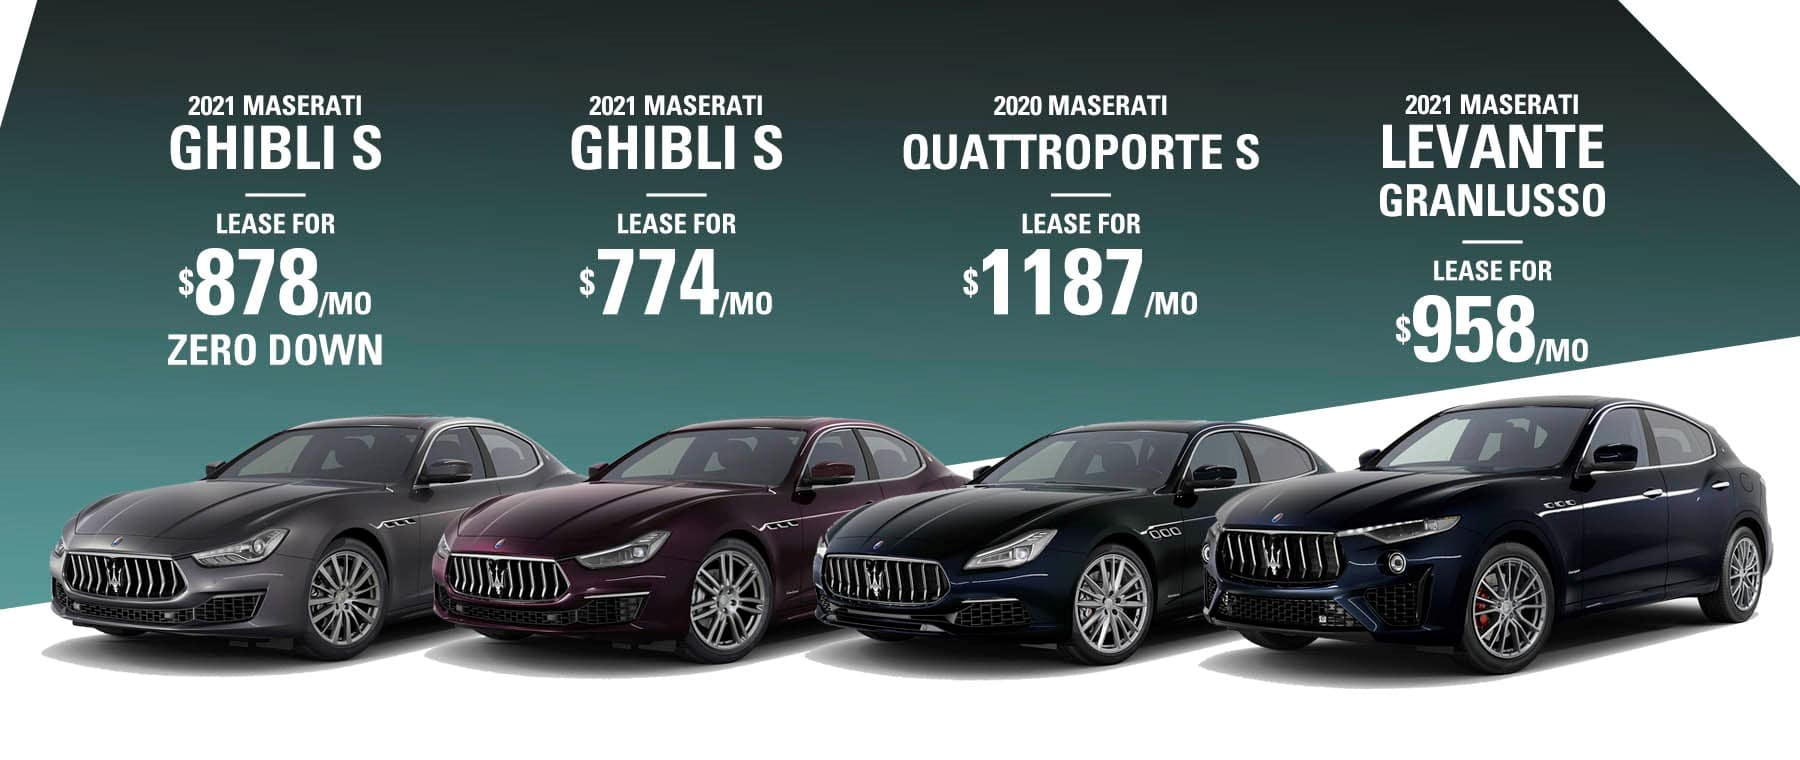 Maserati Lease offers at Maserati of Fort Lauderdale